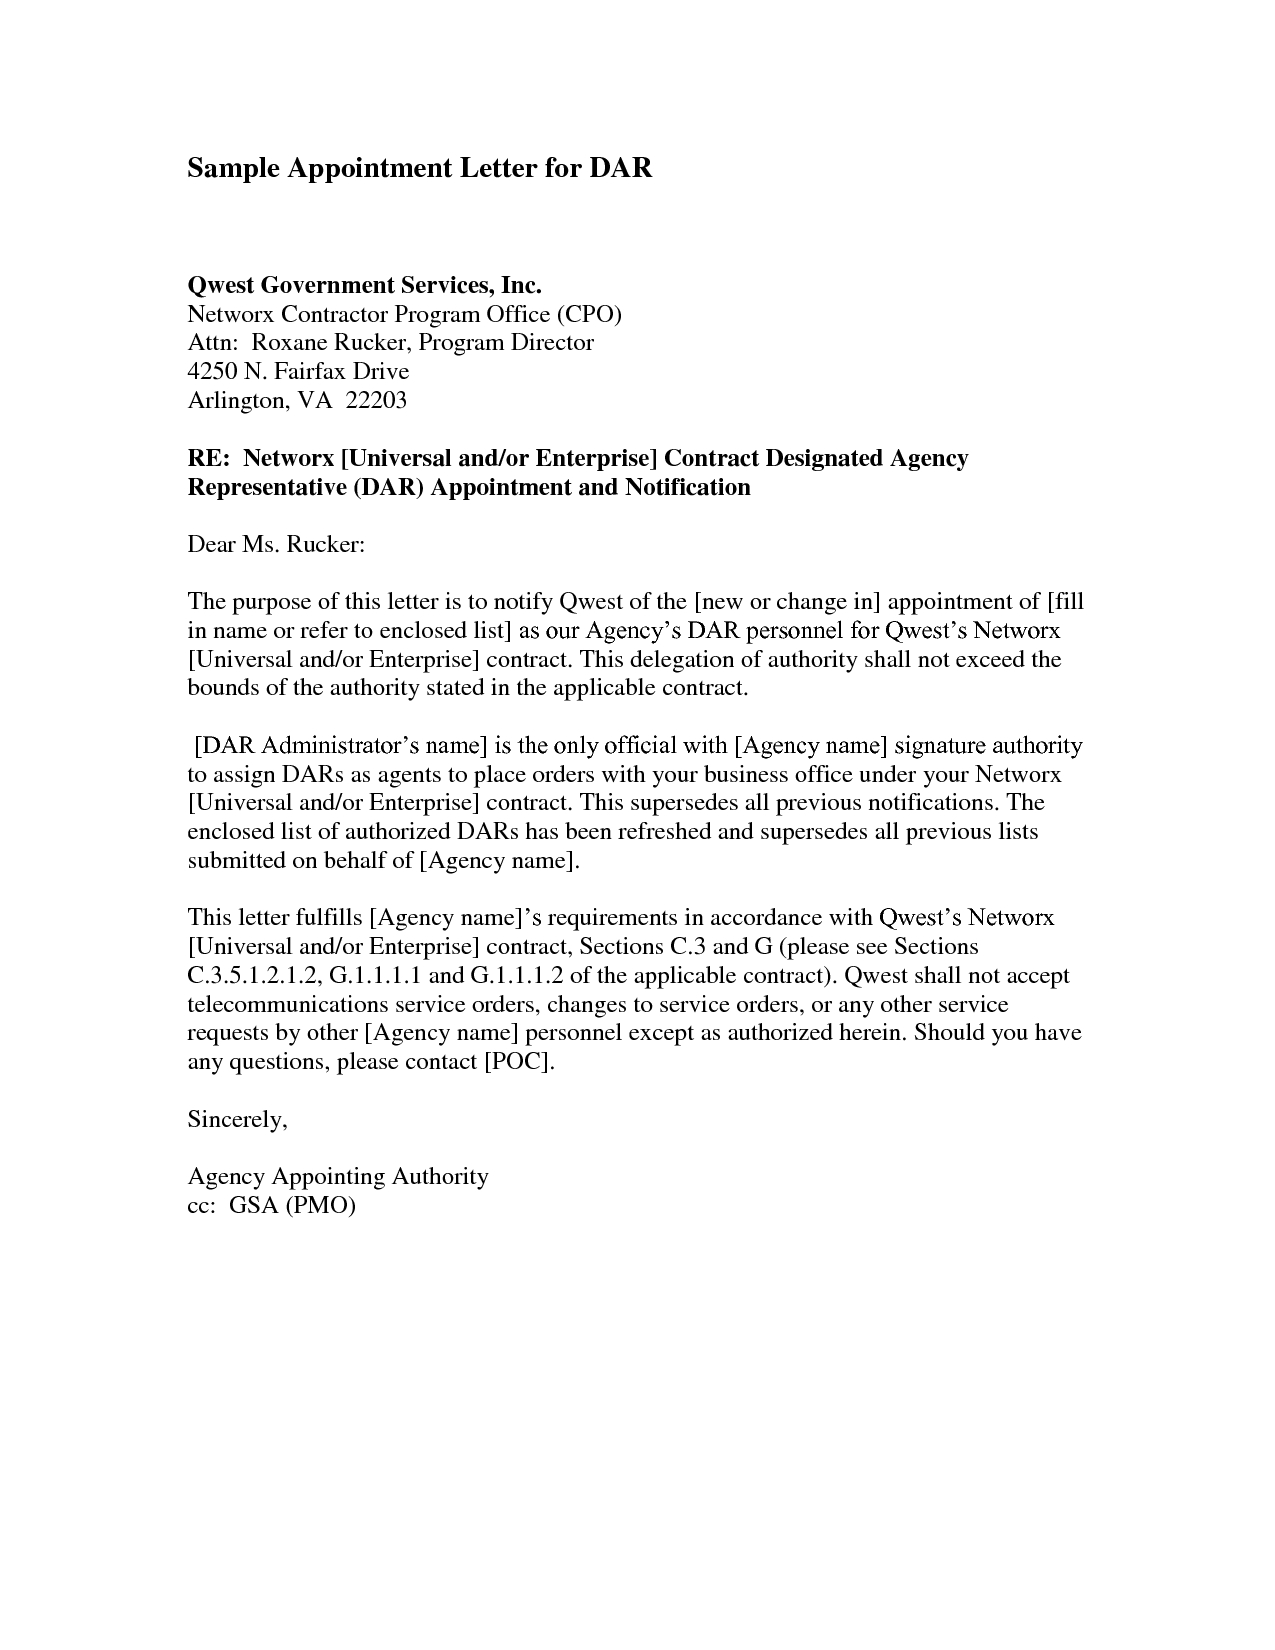 Free Collection Letter Template - Trustee Appointment Letter Director Trustee is Appointed or